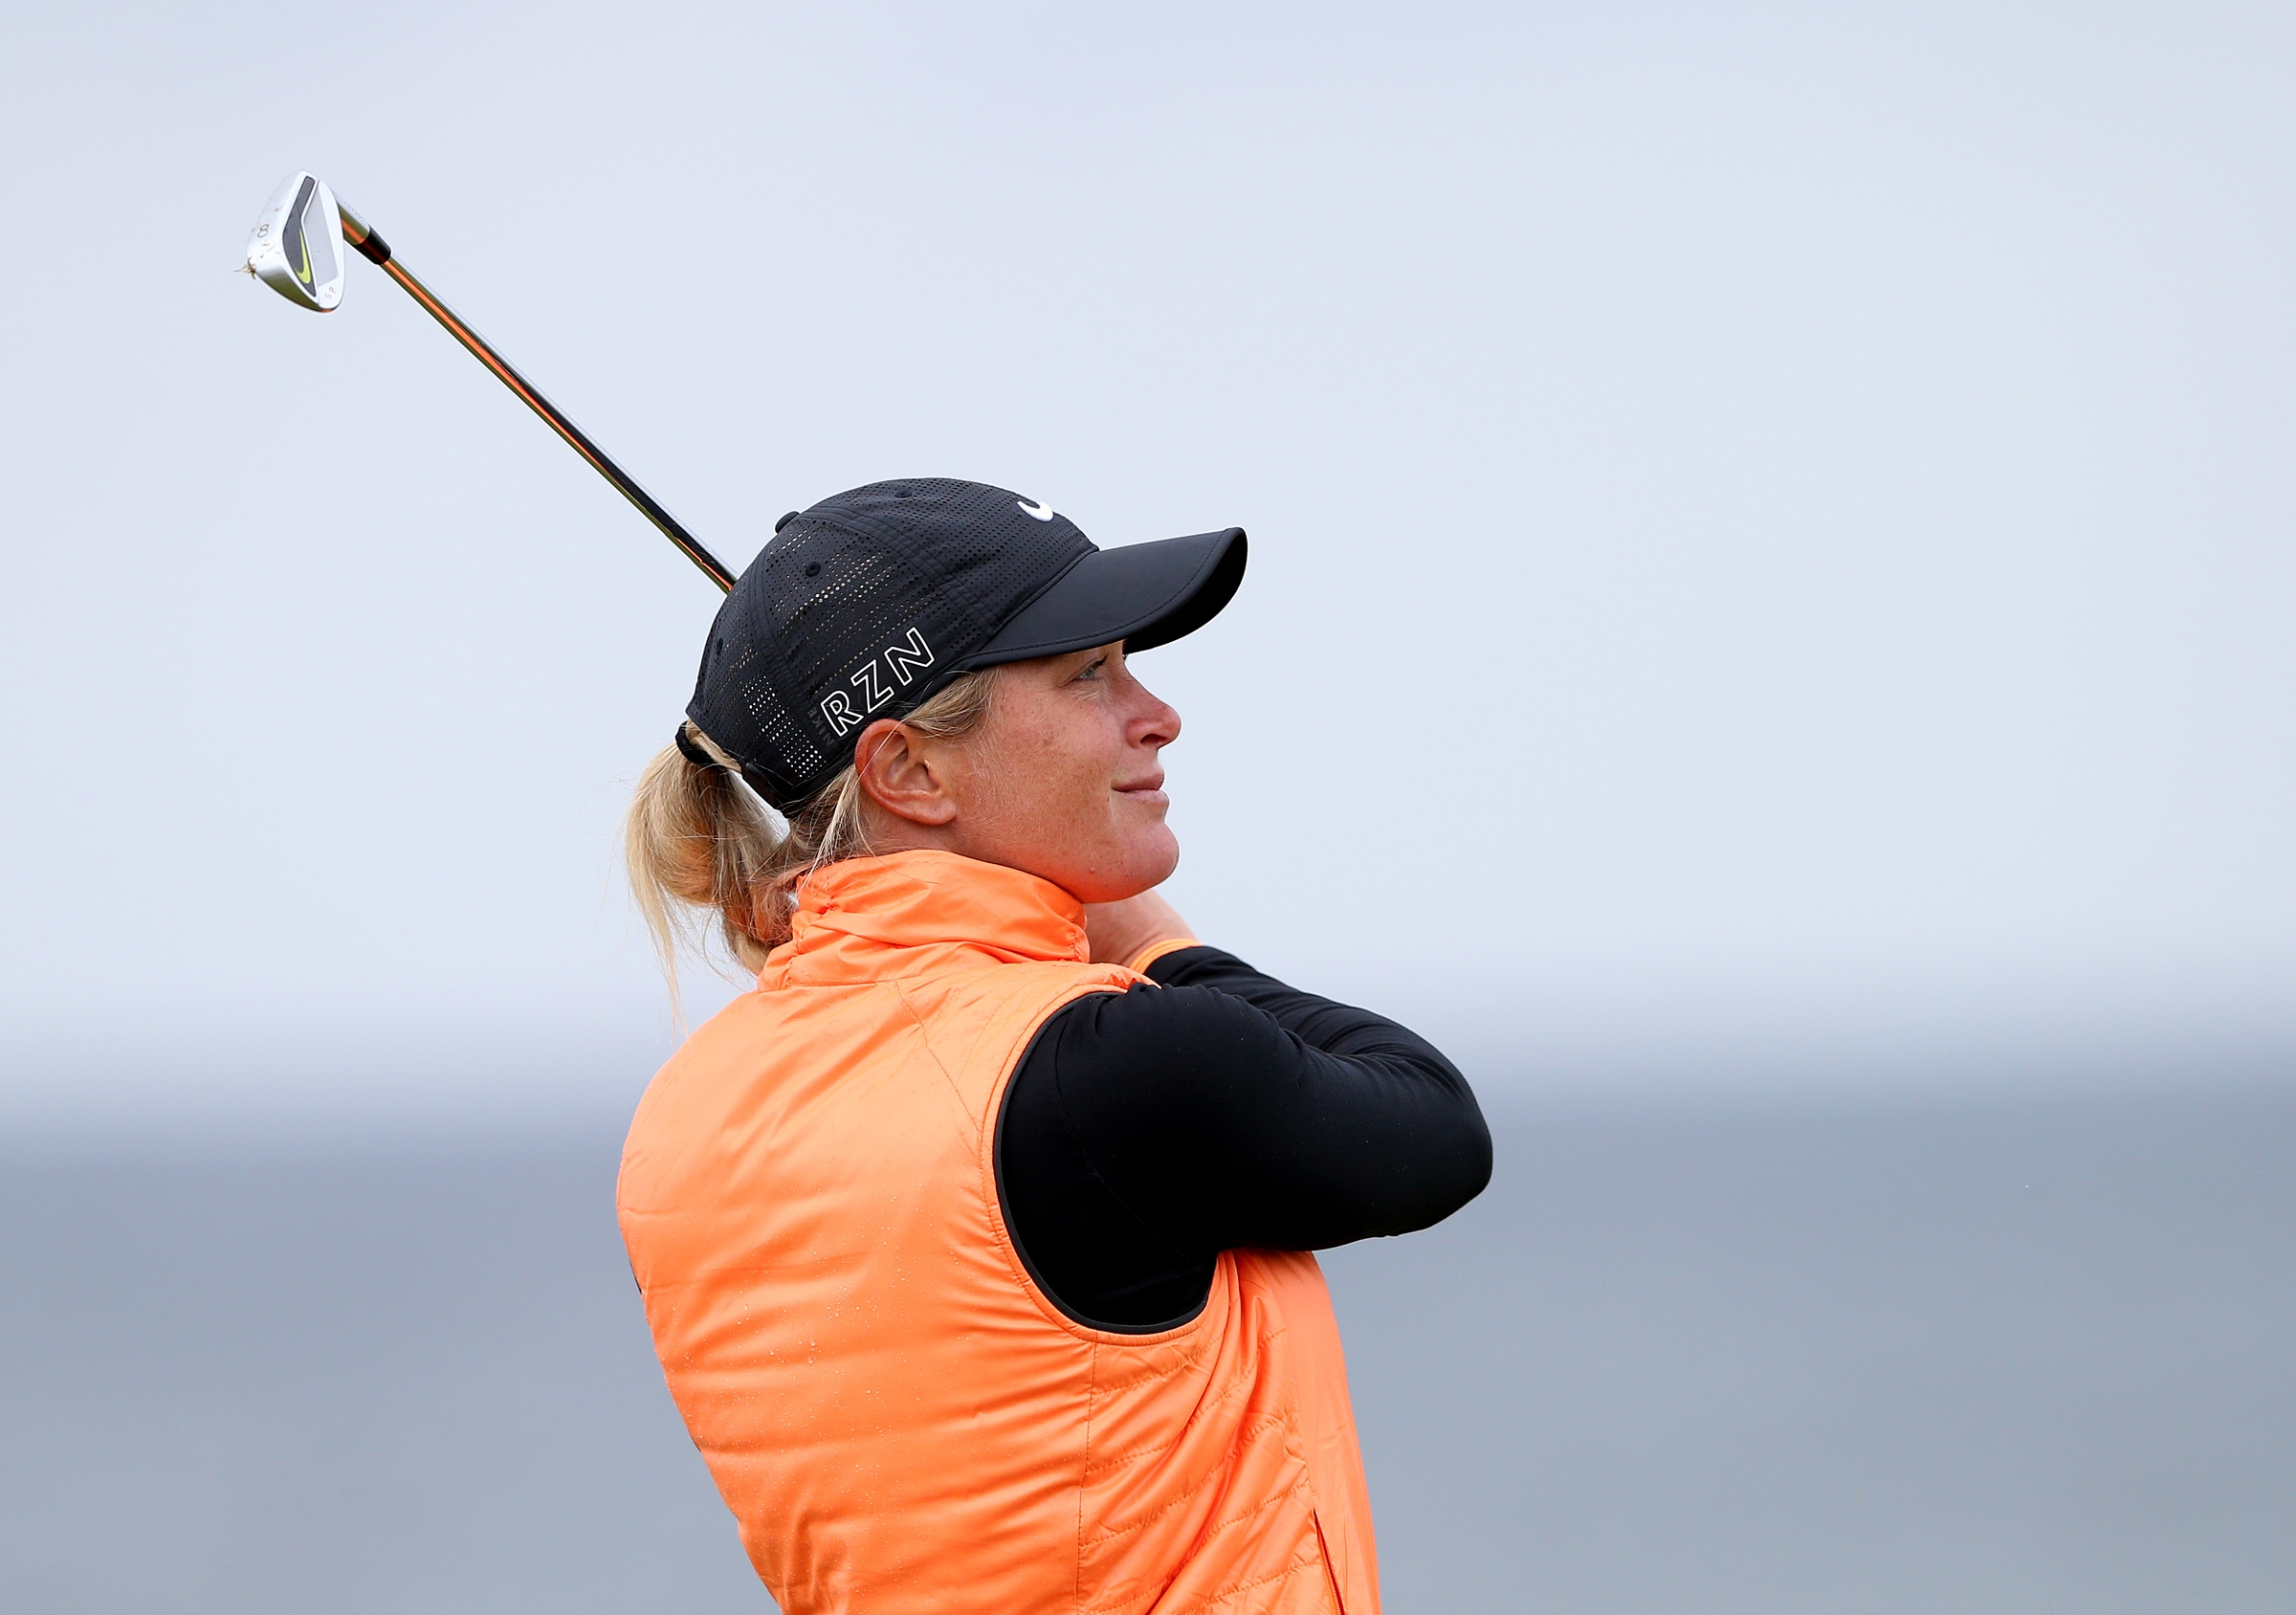 Suzann Pettersen of Norway tees off from the 4th during the final day of the Women's British Open golf championship on the Turnberry golf course in Turnberry, Scotland, Sunday, Aug. 2, 2015. (AP Photo/Scott Heppell)